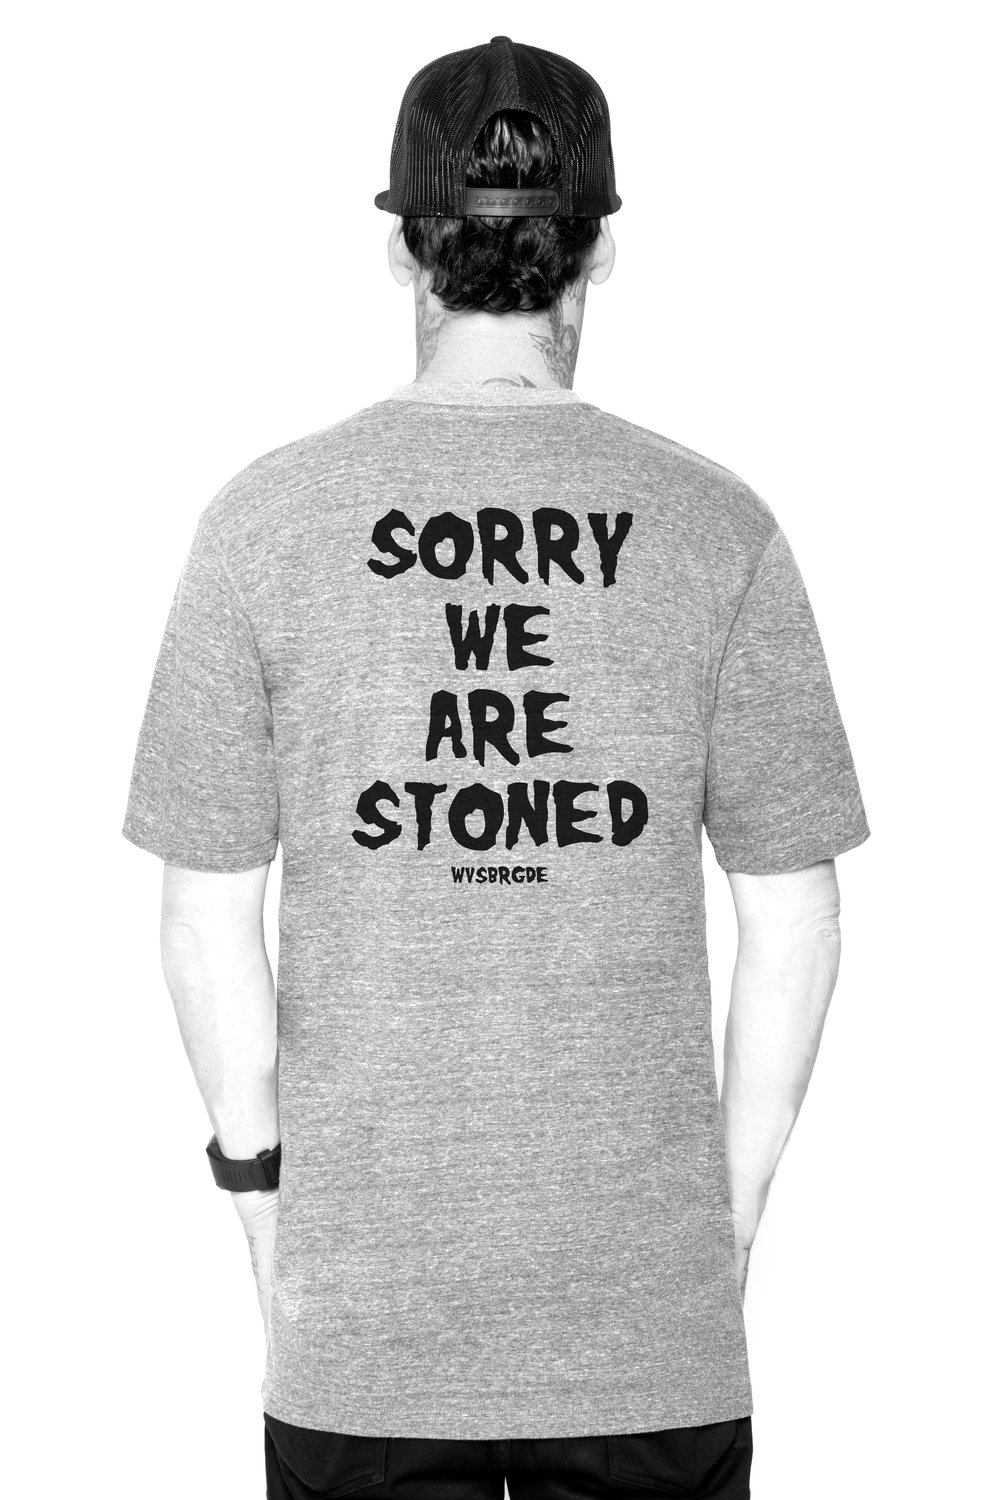 SORRY-WE-ARE-STONED-GREY-BACK.jpg